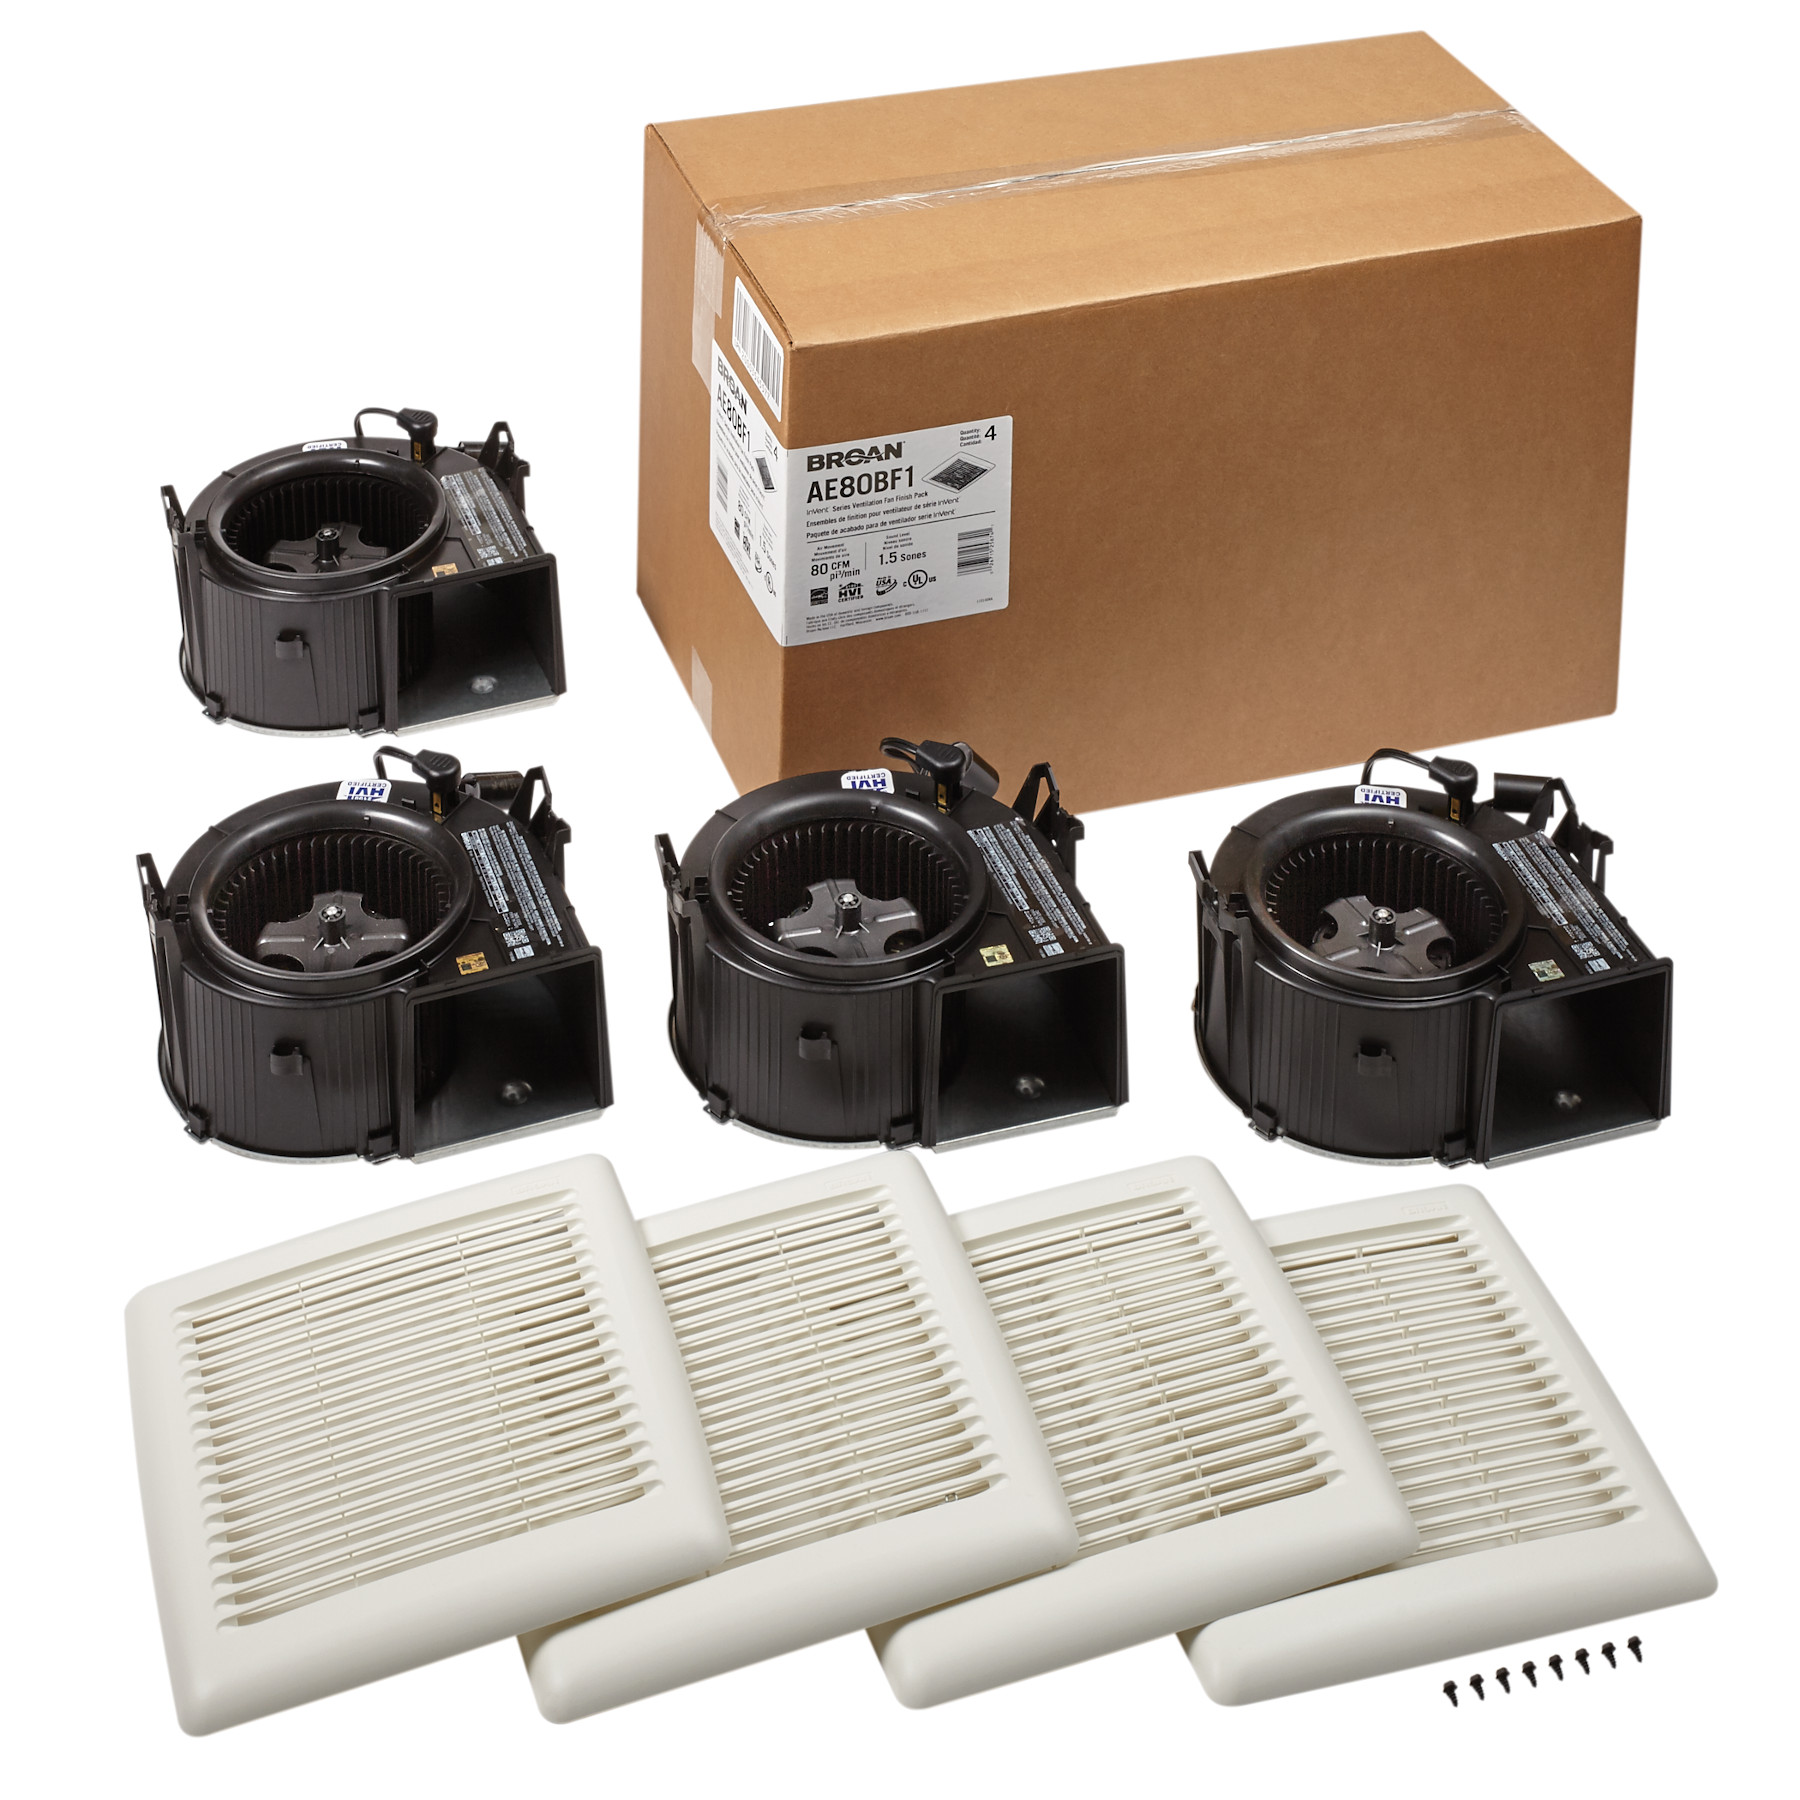 BROAN AE80BF1 FLEX SERIES BATHROOMVENTILATION FAN FINISH PACK 80 CFM1.5 SONES ENERGY STAR CERTIFIED